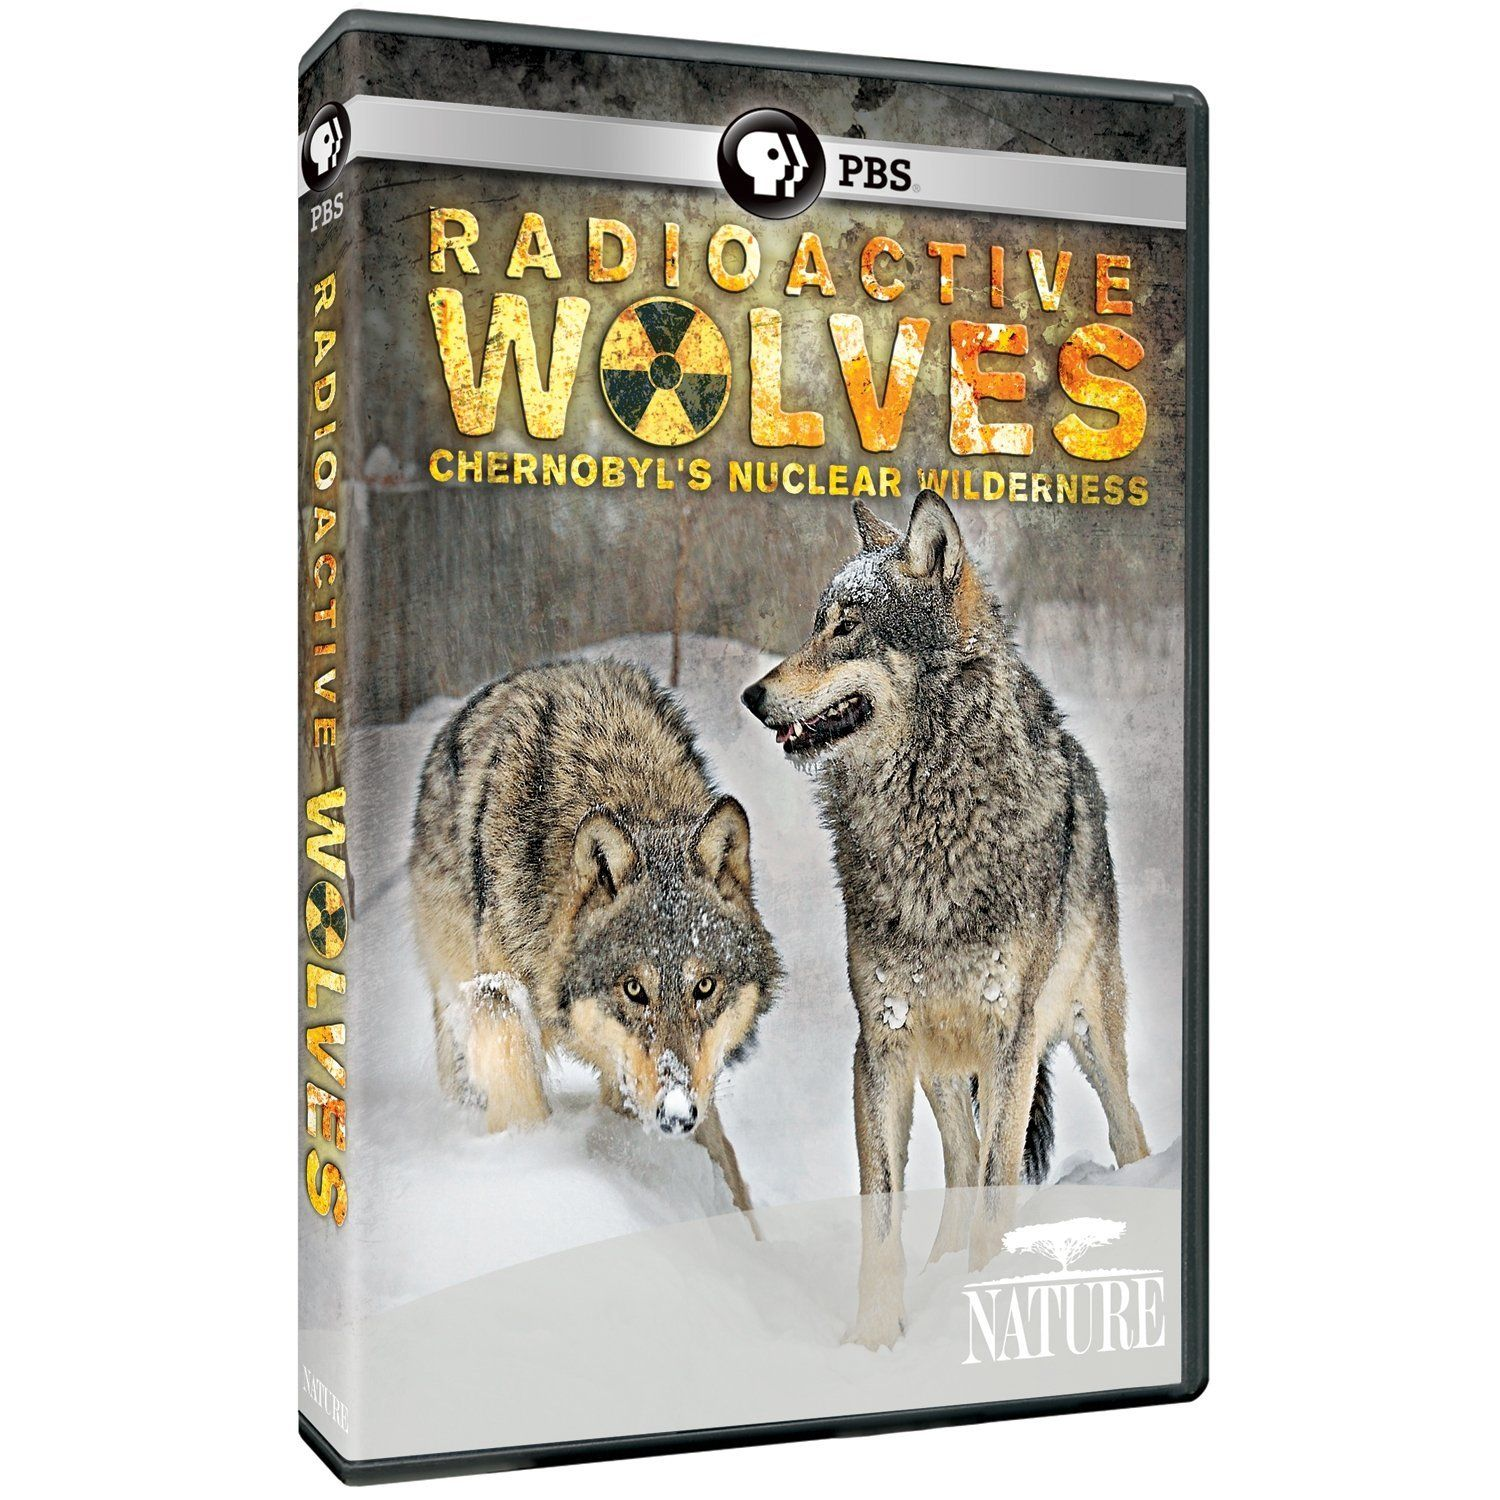 Nature Radioactive Wolves Chernobyl S Nuclear Wilderness This